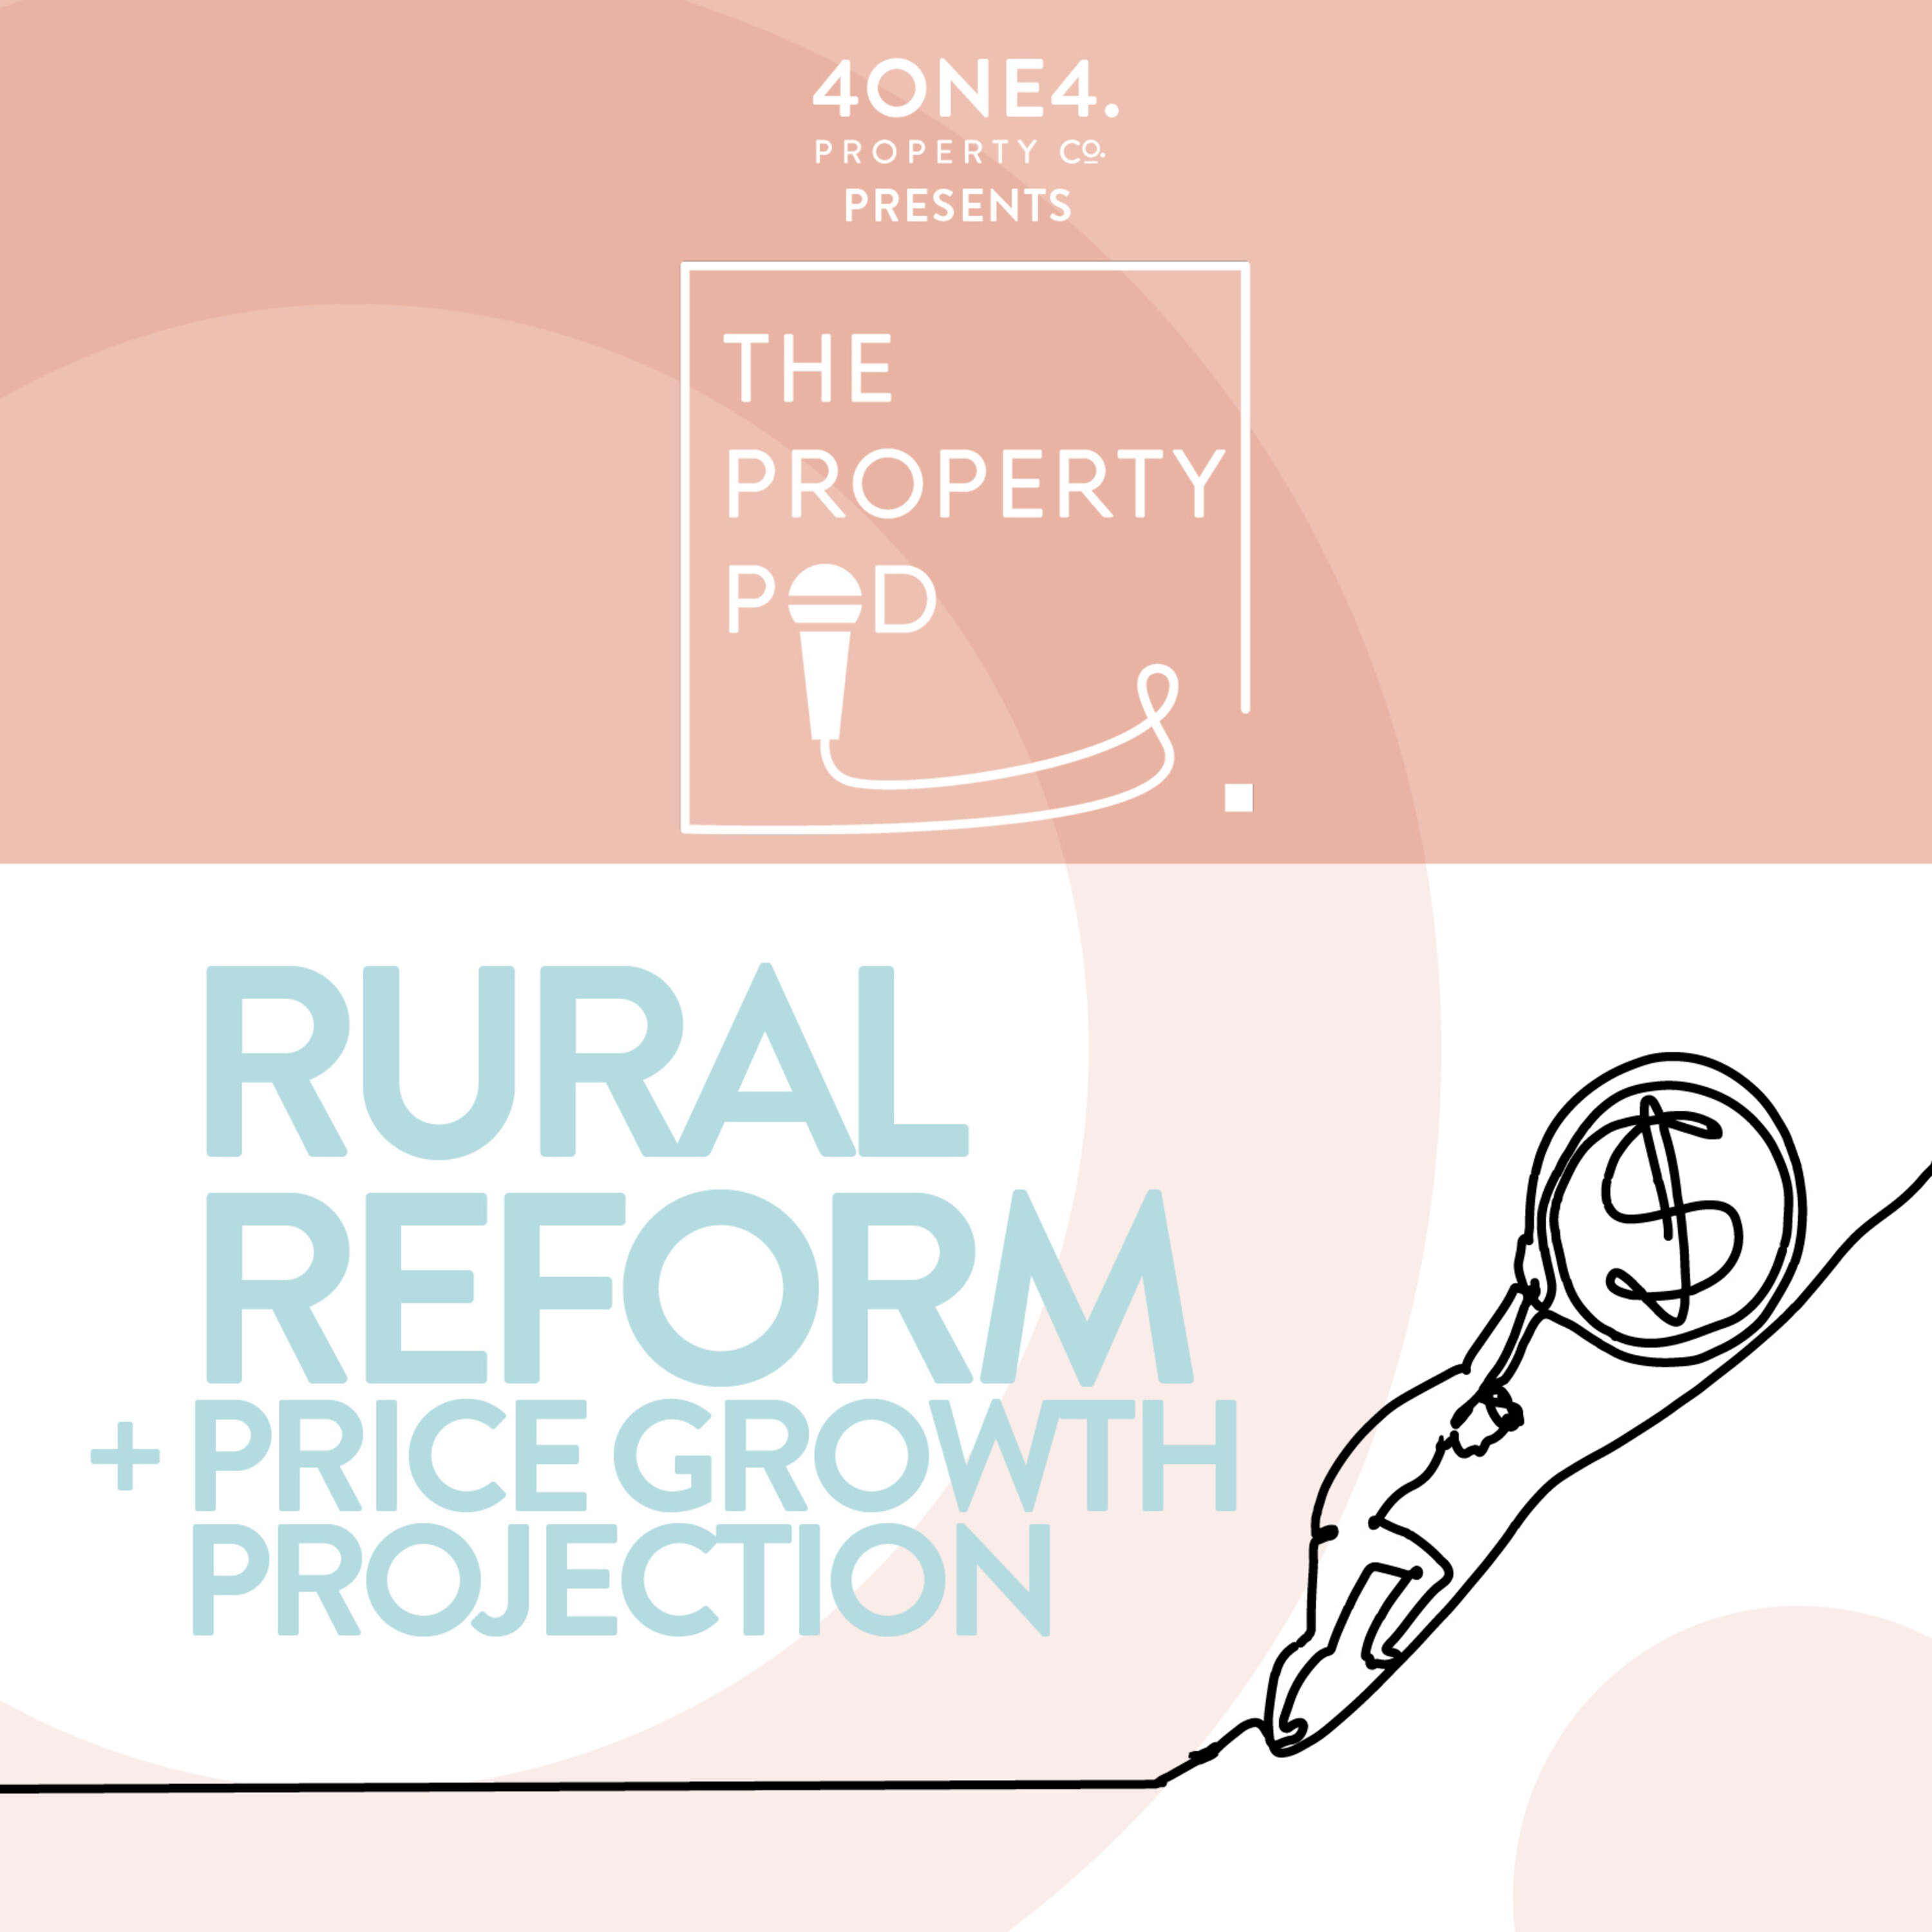 Rural Reform + Price Growth Projection